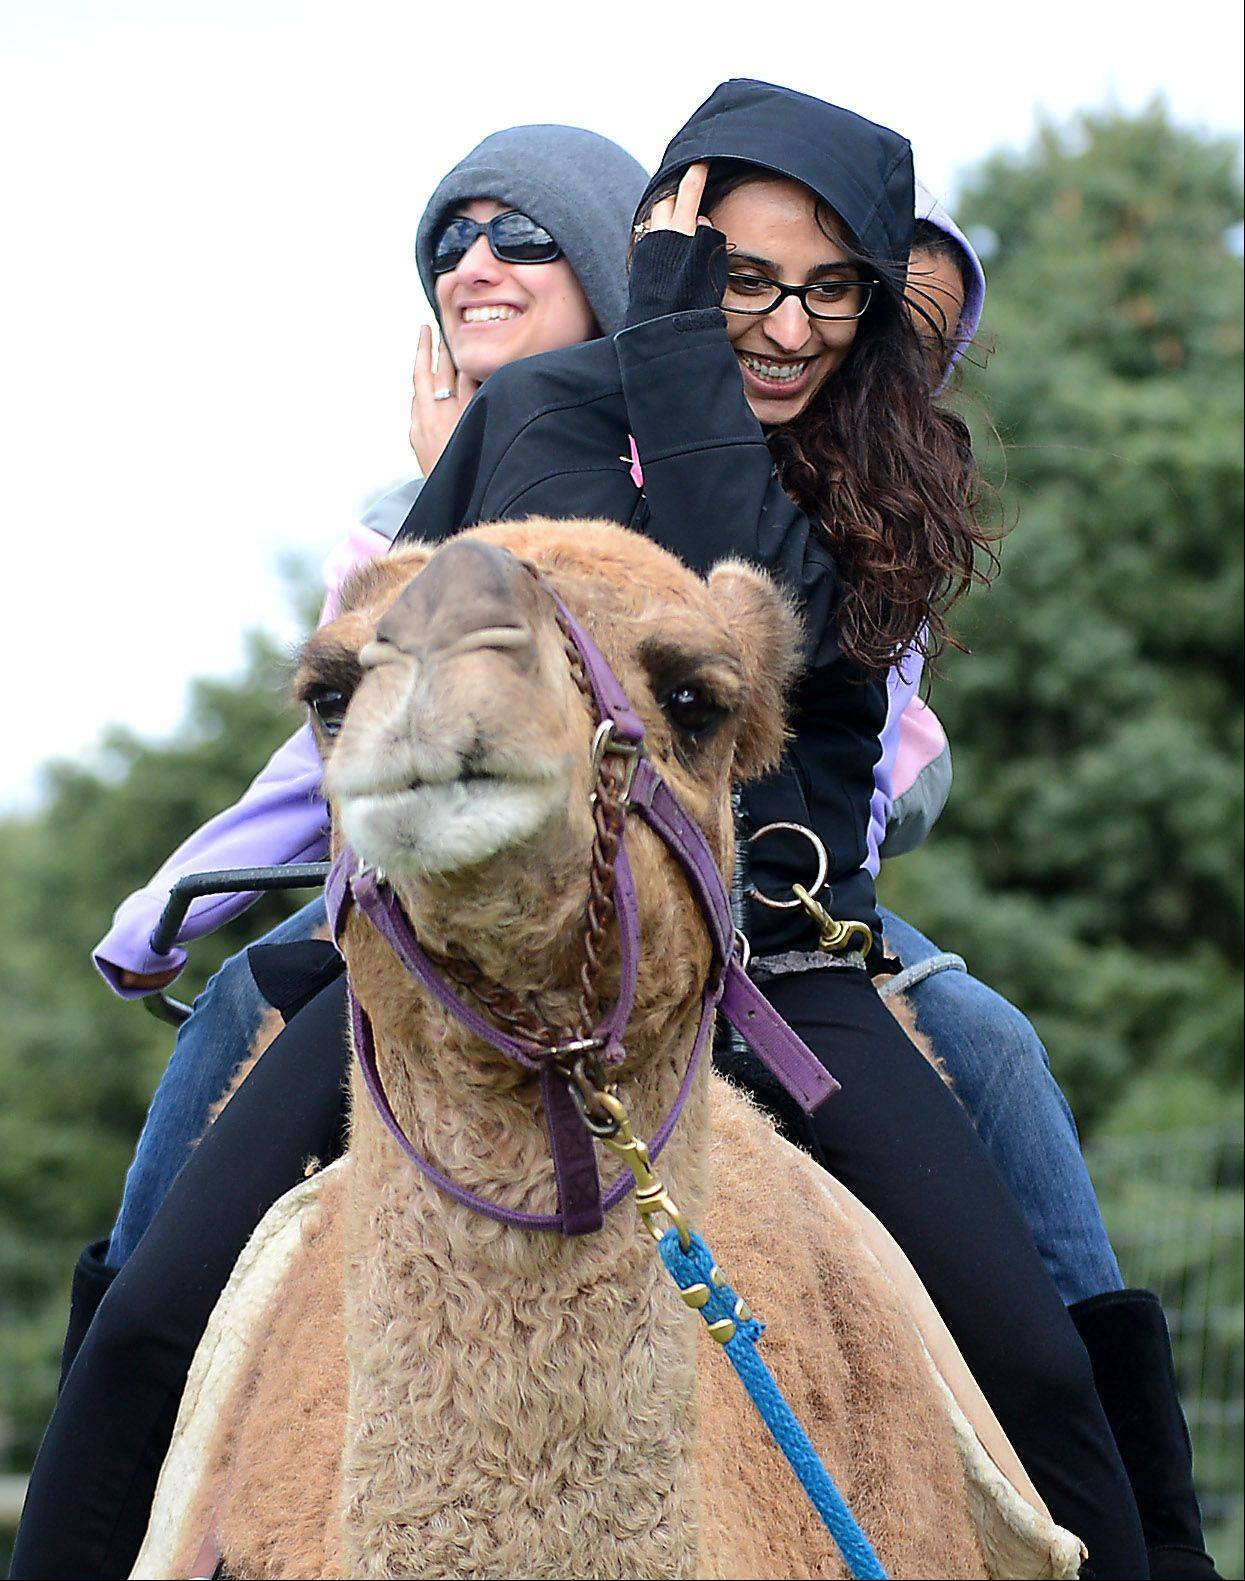 Saniyah Shakeel, front, of Schaumburg, and Jessica Cairo, left, of Carol Stream, smile after Goober the camel bucks a little during a ride at the Goebbert's Pumpkin Patch Fall Festival in Hampshire Monday. They were riding with Dana Mestey, 11, of Algonquin, who was smooshed in the middle.